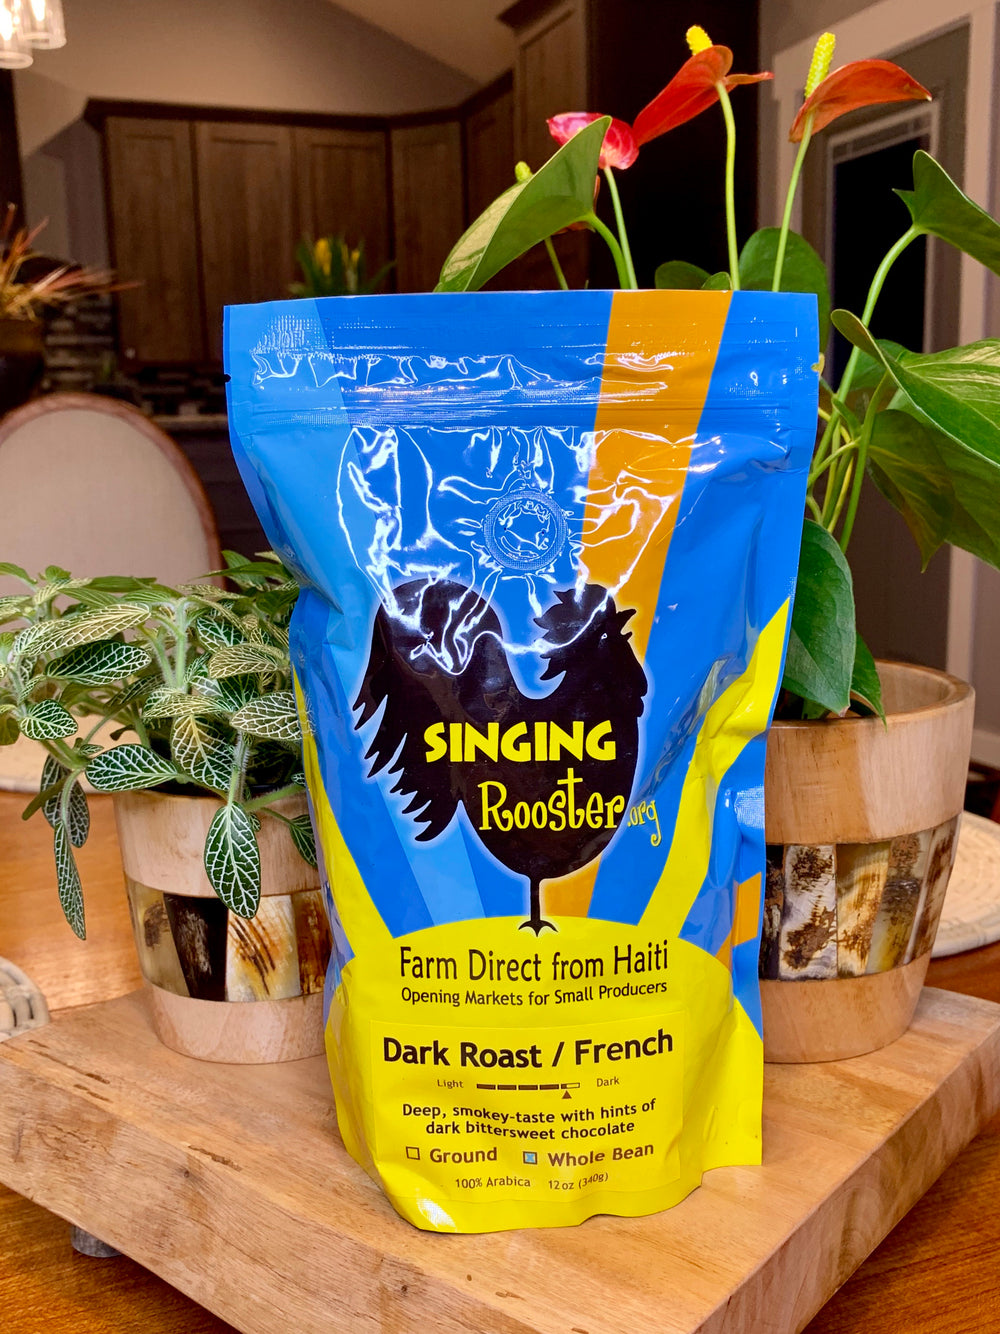 French Dark Roast Coffee by Singing Rooster from Haiti